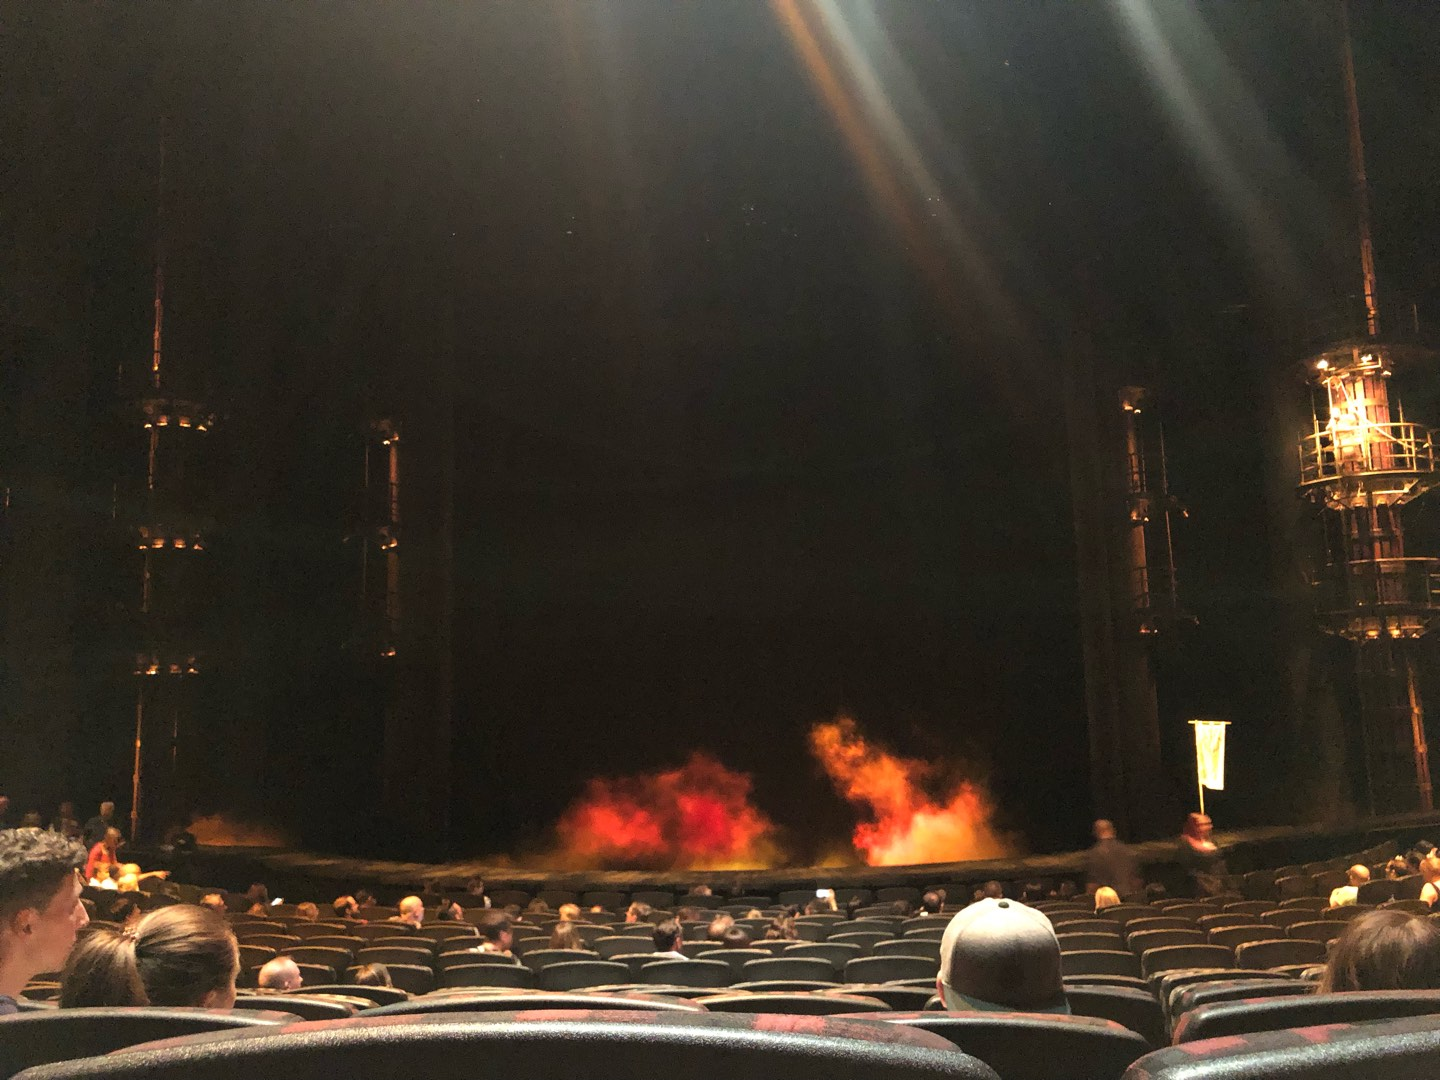 KÀ Theatre - MGM Grand Section 102 Row P Seat 18